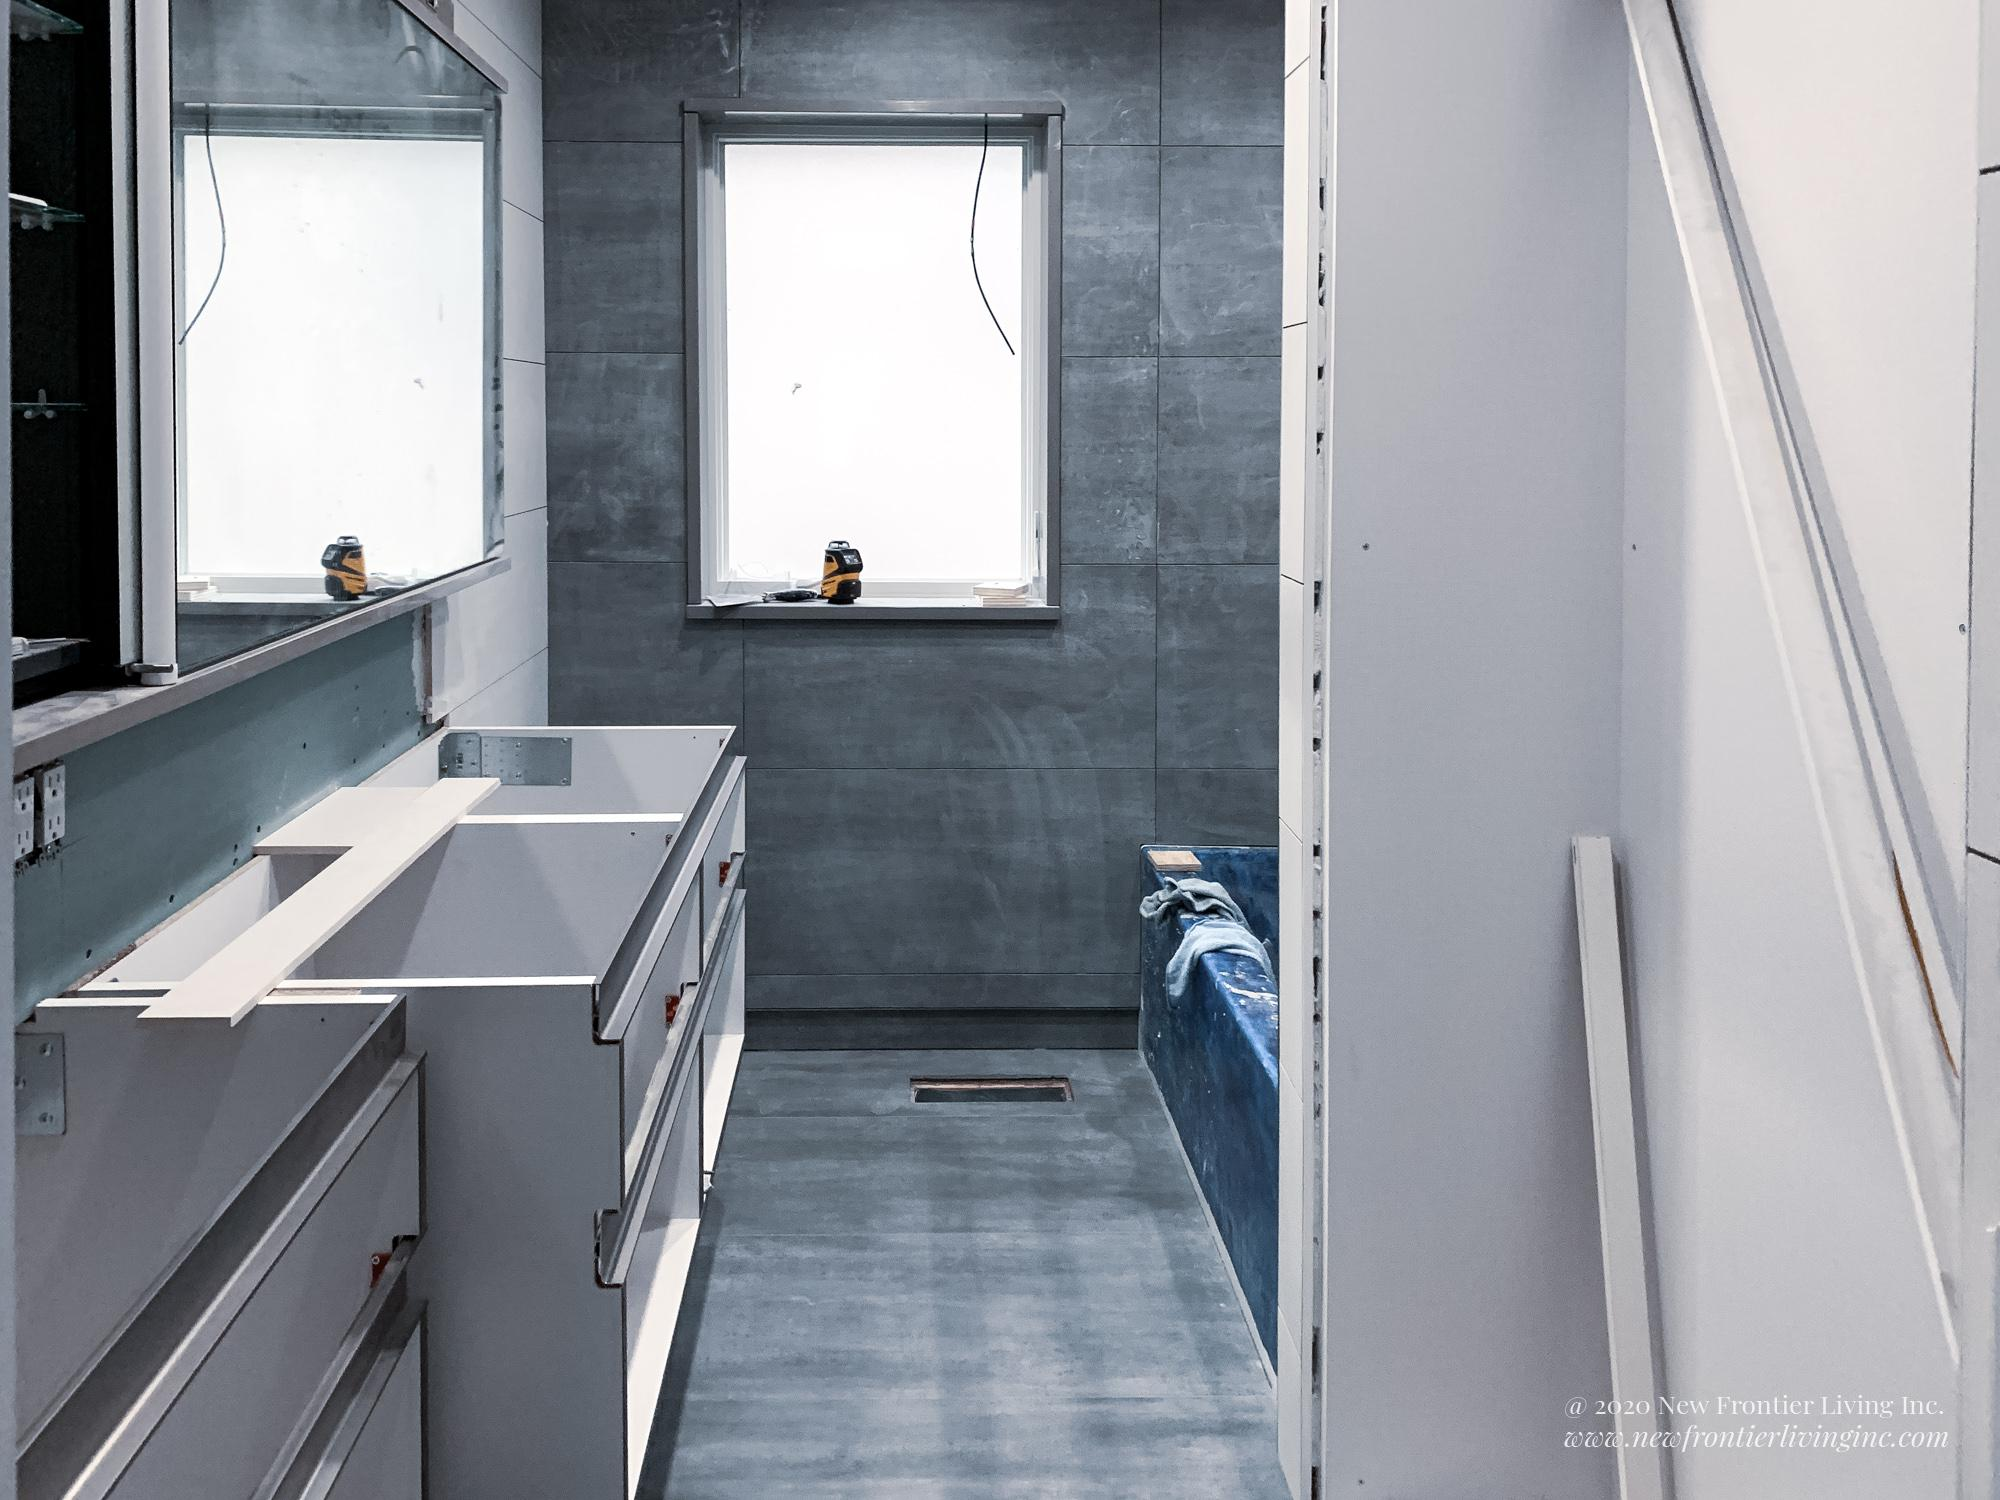 Bathroom during remodeling, bare cabinetry boxes and tiles, blue protection on the tub, drywall for linen cabinet